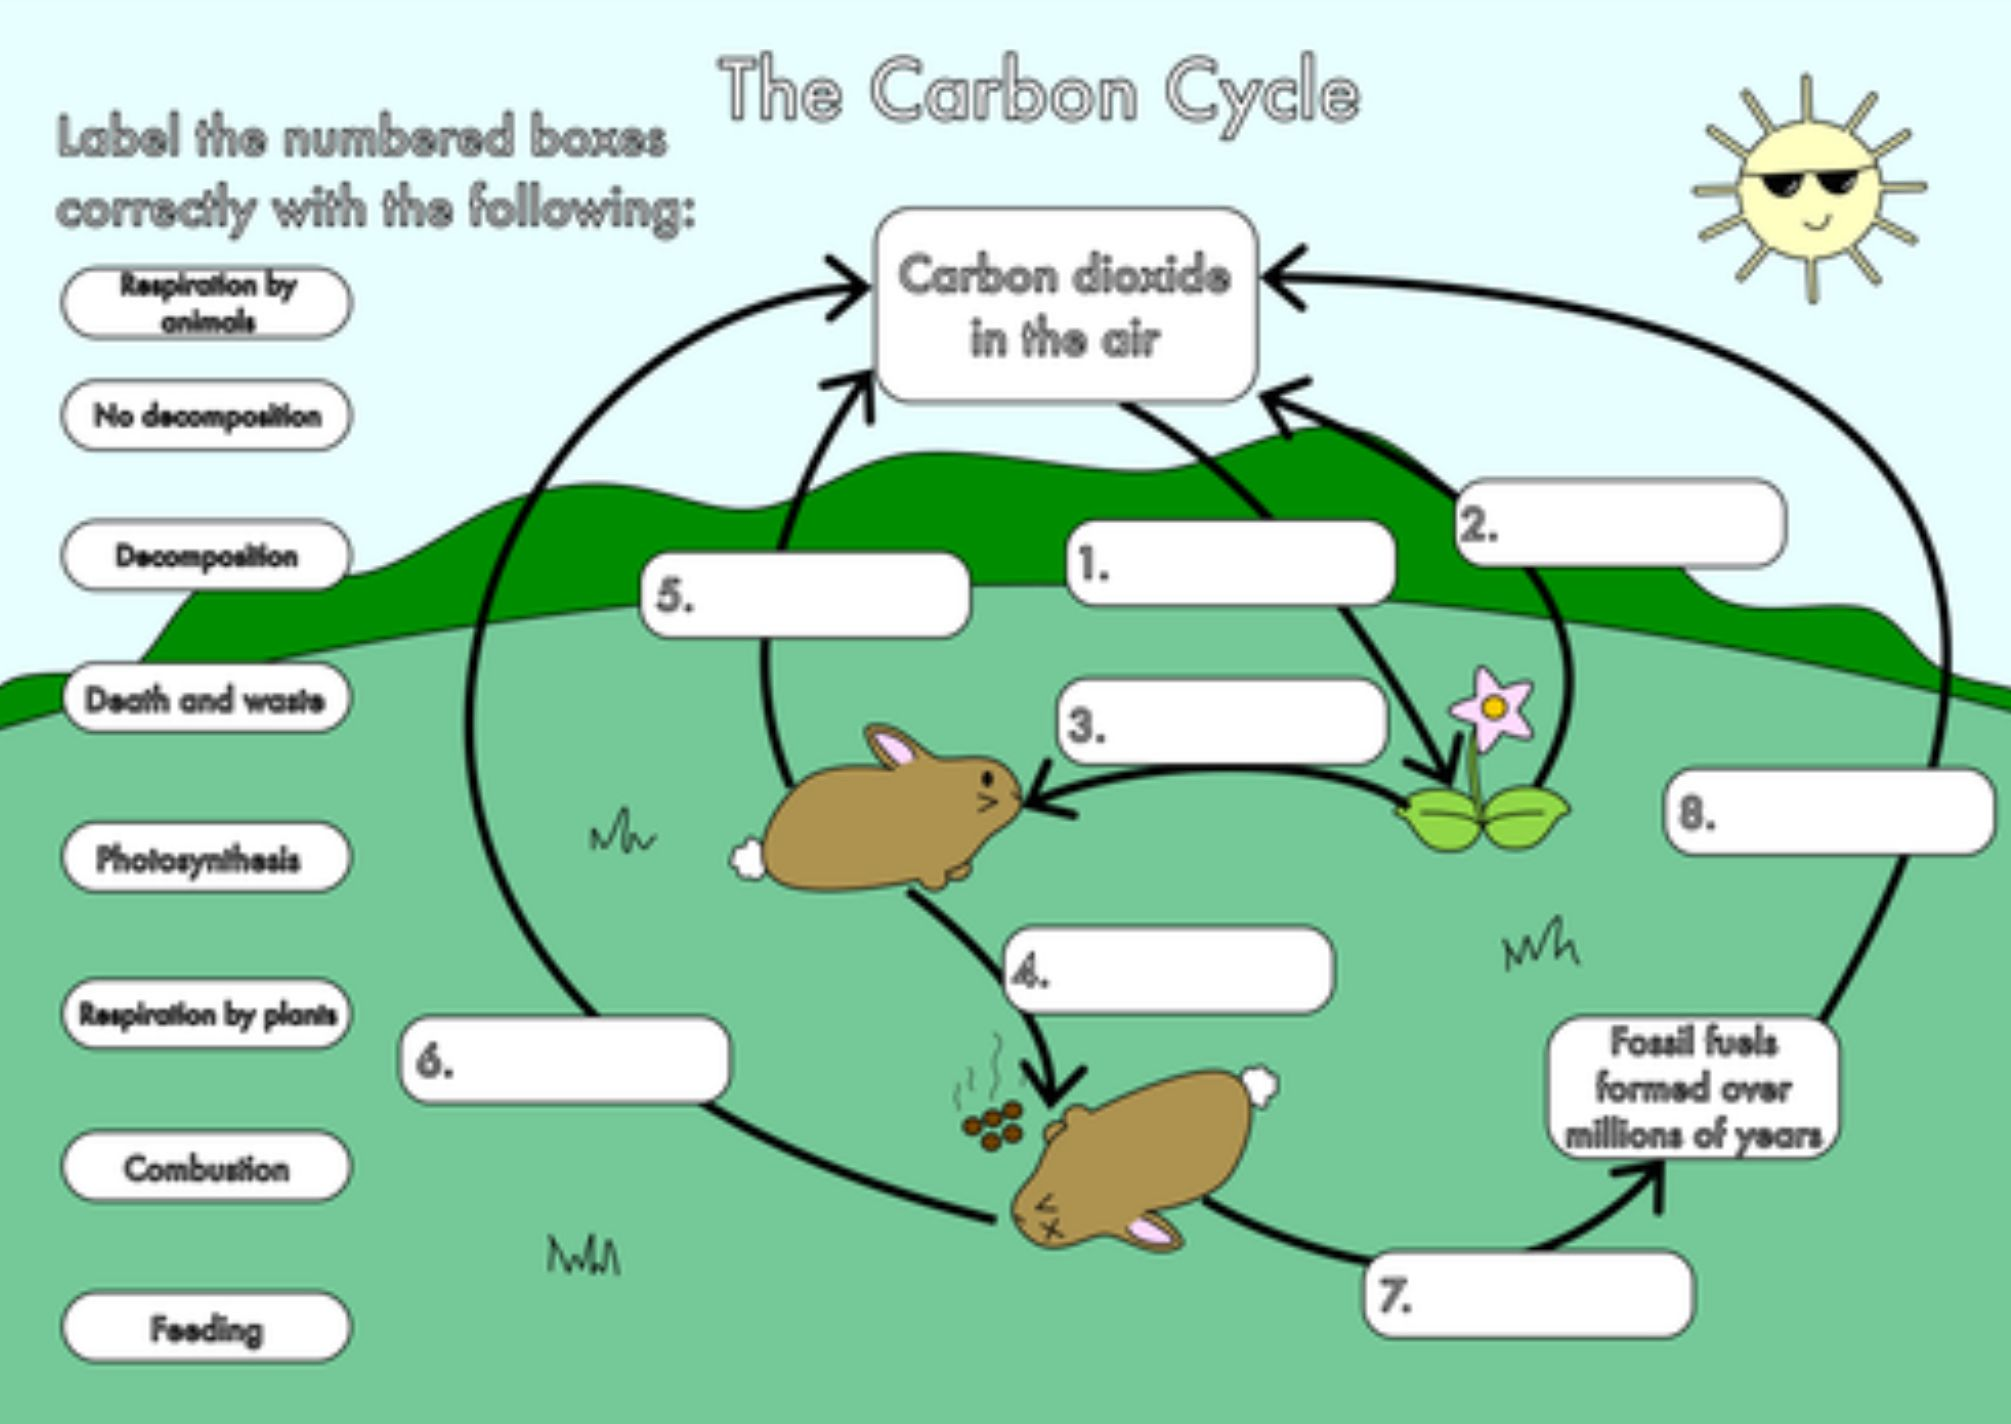 the carbon cycle worksheet 1 thursday may 23 2019 snc1d carbon cycle diagram fill in the blank carbon cycle diagram fill in [ 2011 x 1424 Pixel ]